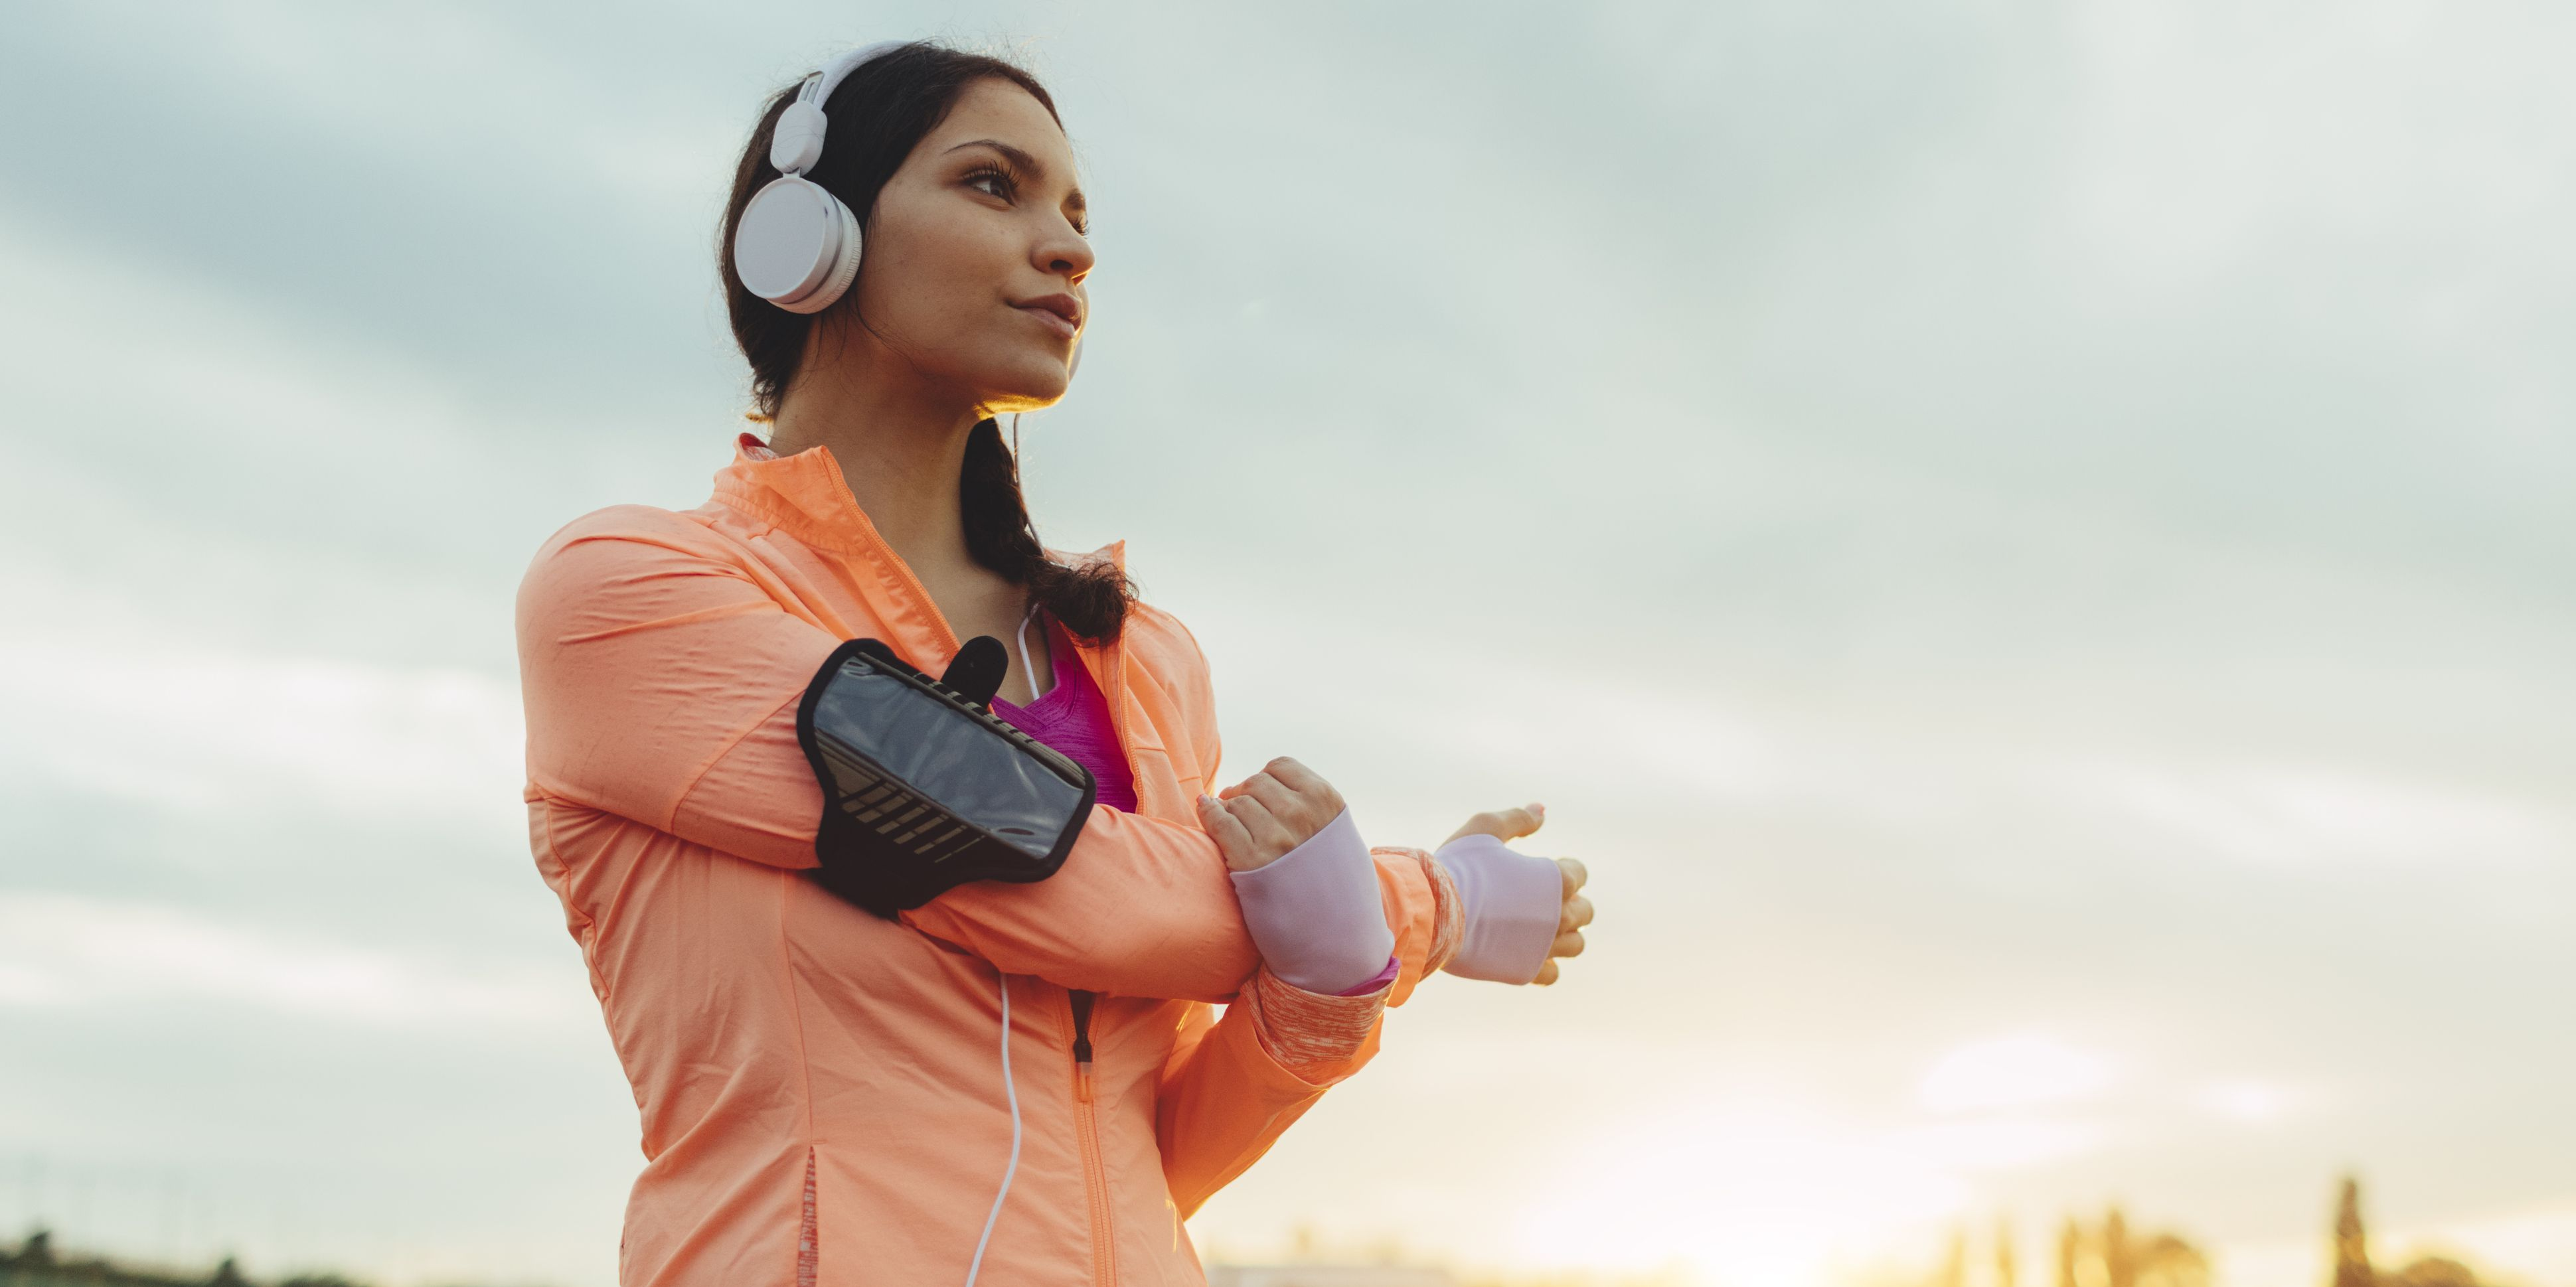 25 Fascinating Health and Fitness Podcasts to Get Obsessed With in 2019